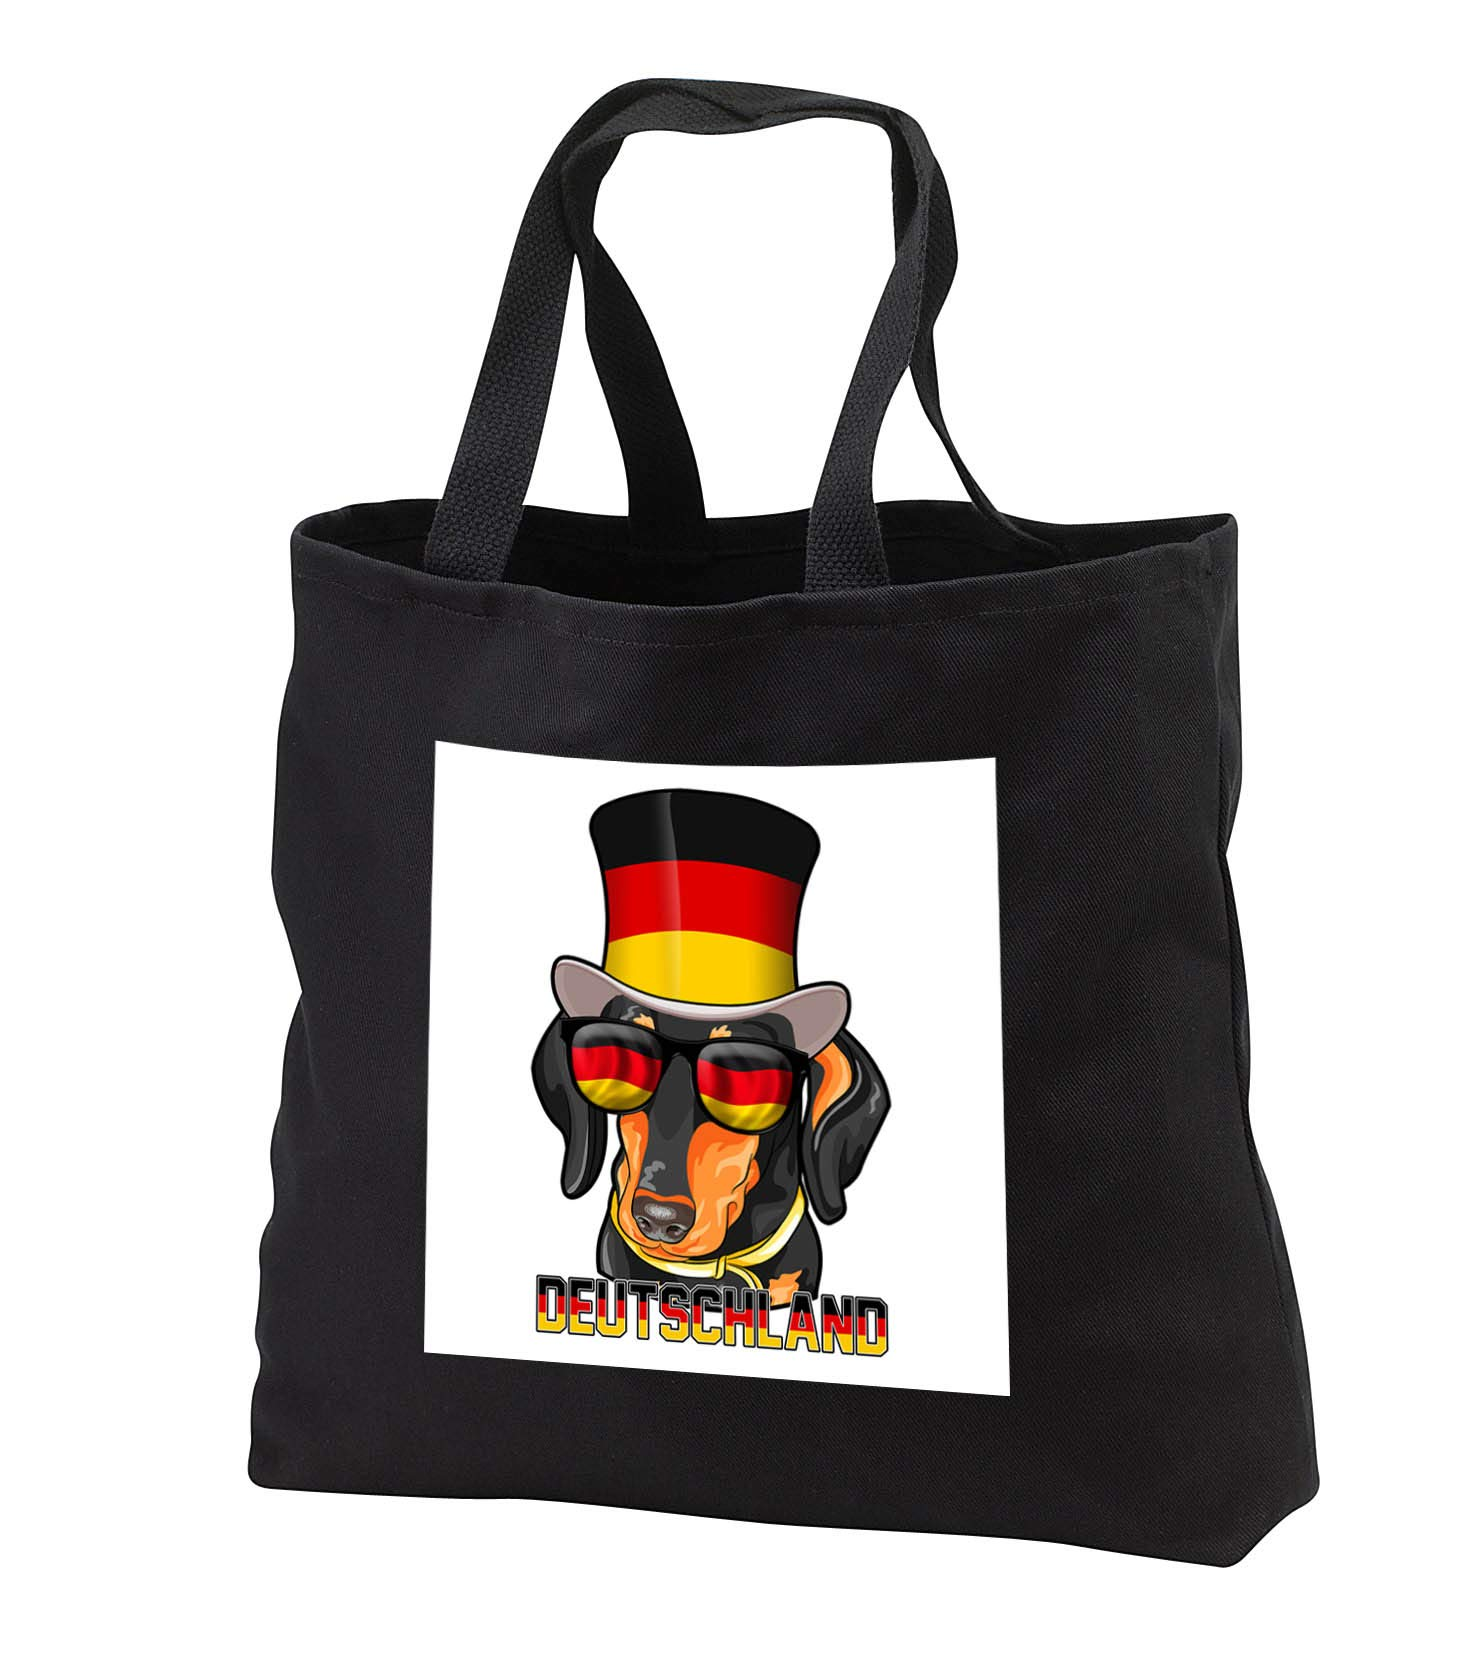 Carsten Reisinger - Illustrations - Germany Dachshund Dog with German Flag Top Hat and Sunglasses - Tote Bags - Black Tote Bag JUMBO 20w x 15h x 5d (tb_293424_3)